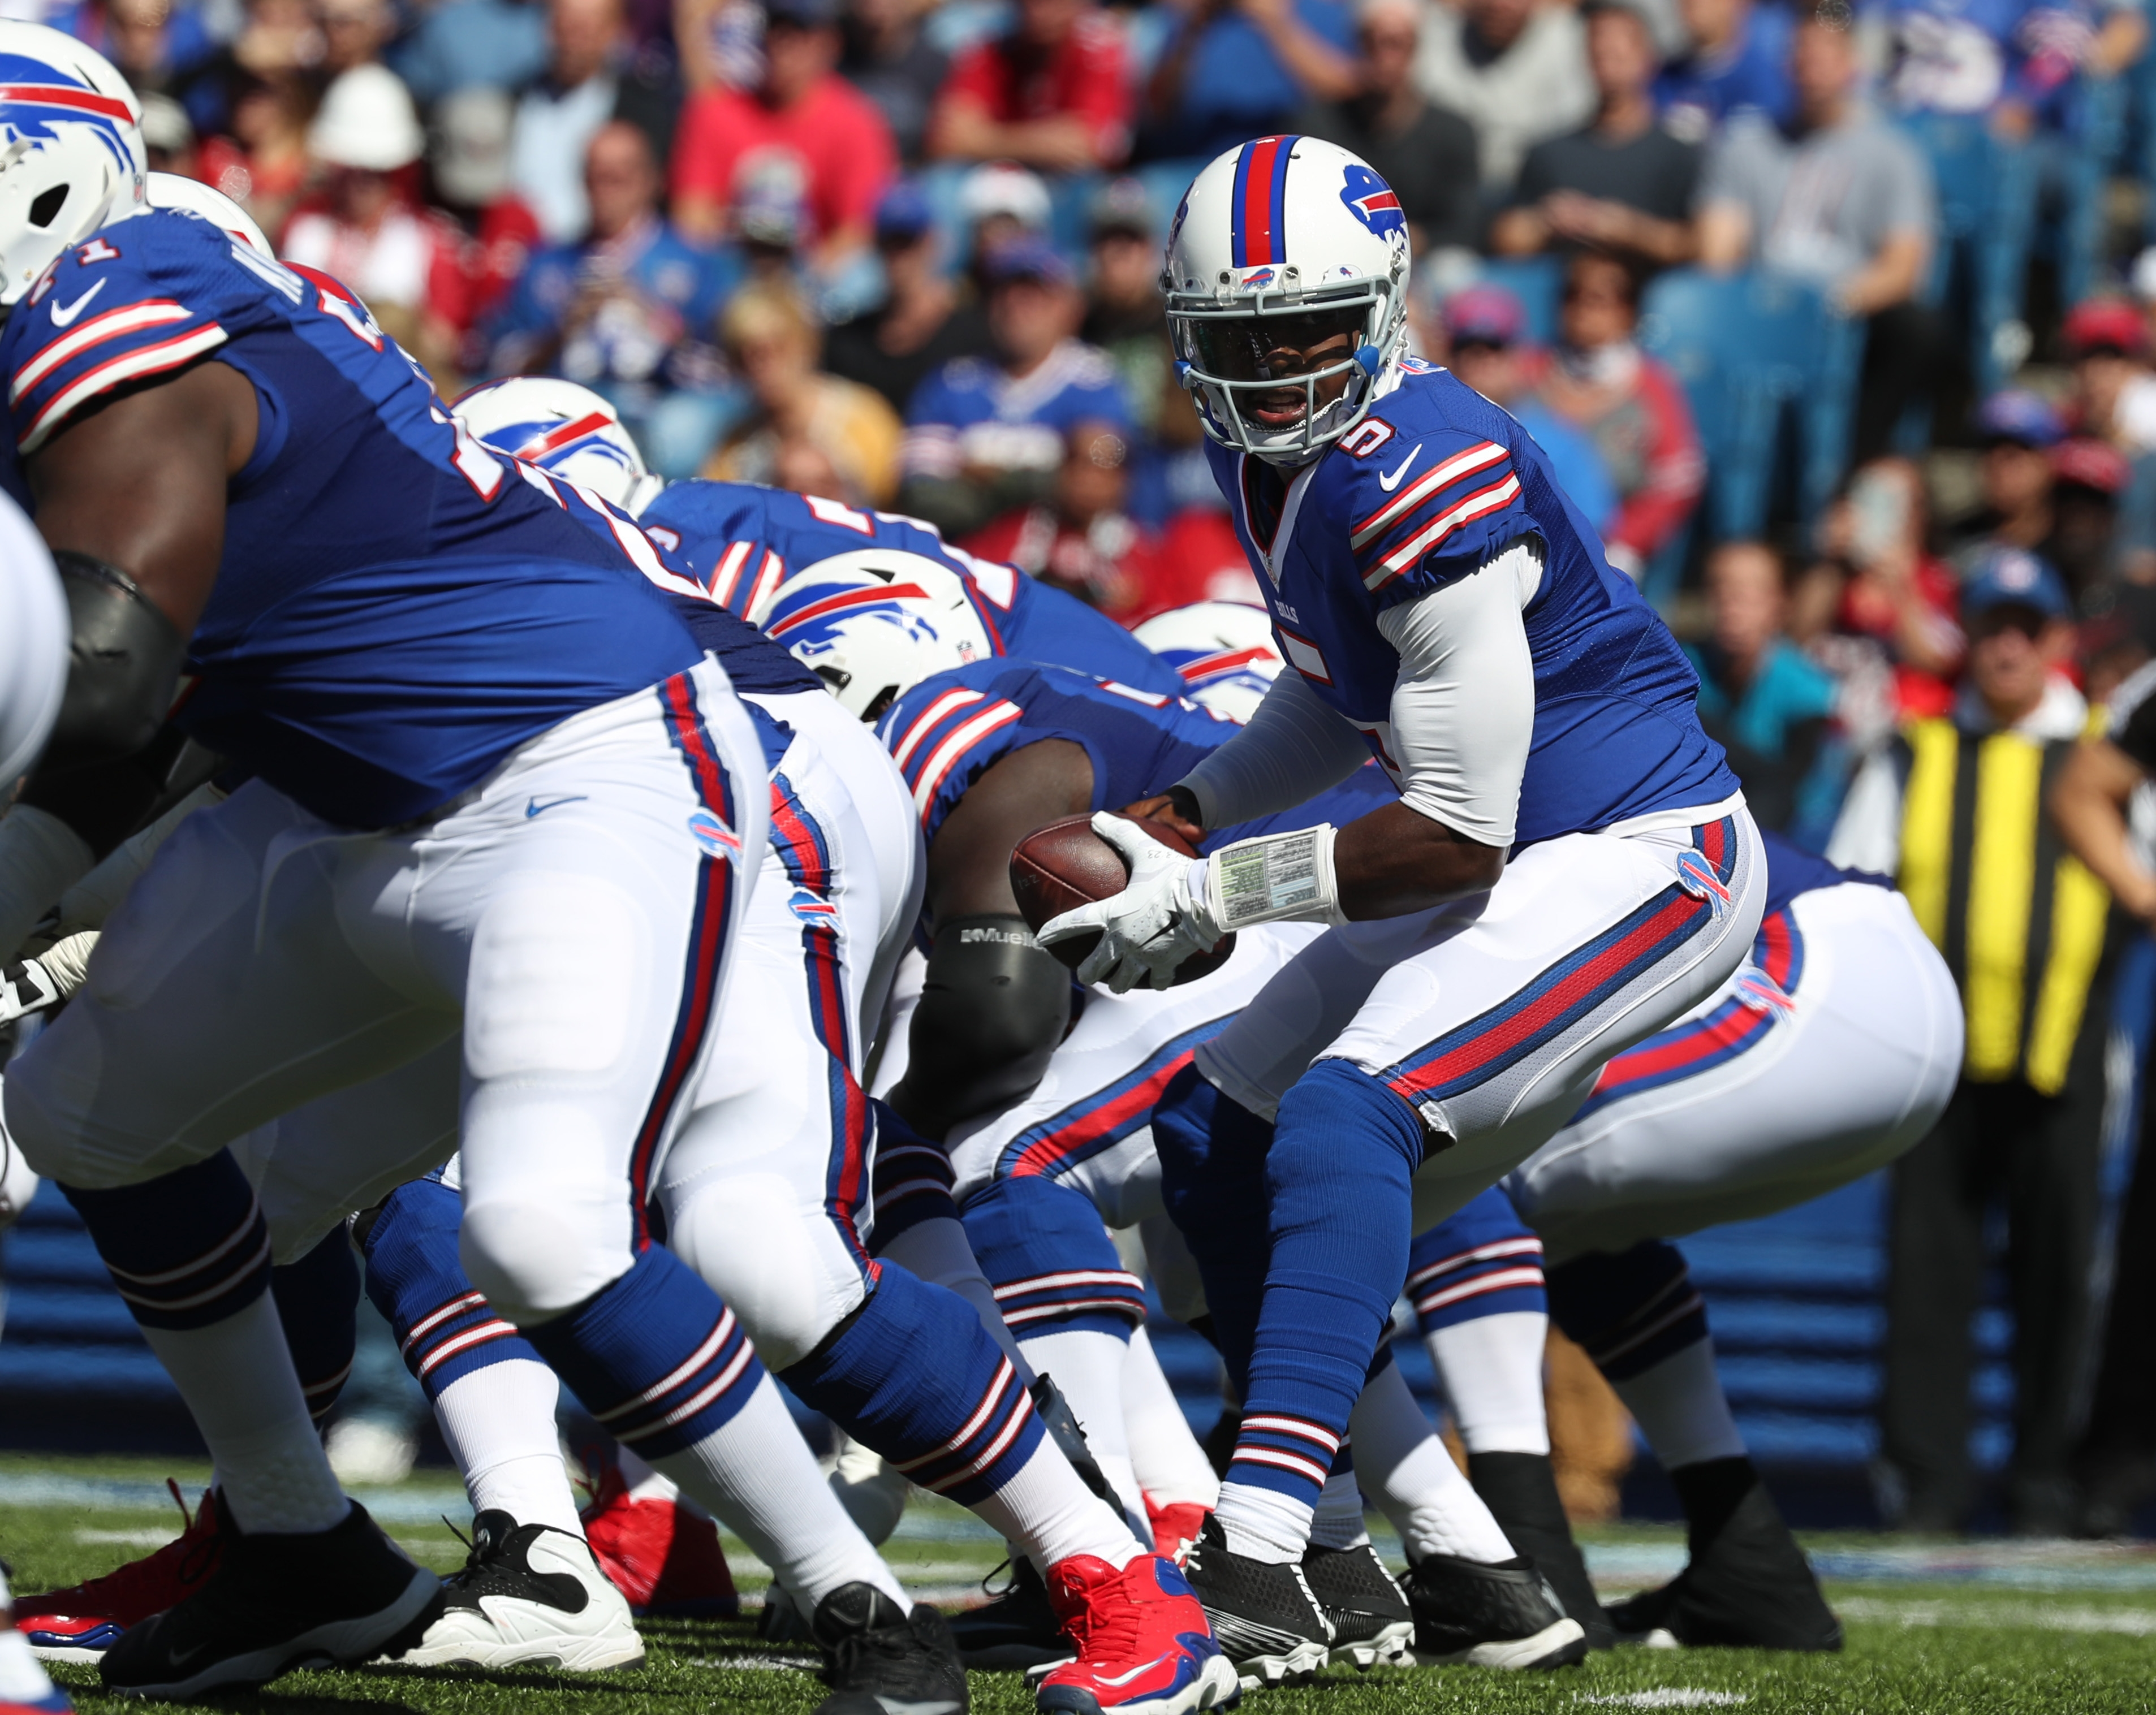 Buffalo Bills quarterback Tyrod Taylor takes a snap in the first quarter against the Arizona Cardinals at New Era Field in Orchard Park, N.Y. on Sunday, Sept. 25, 2016.  (James P. McCoy/ Buffalo News)